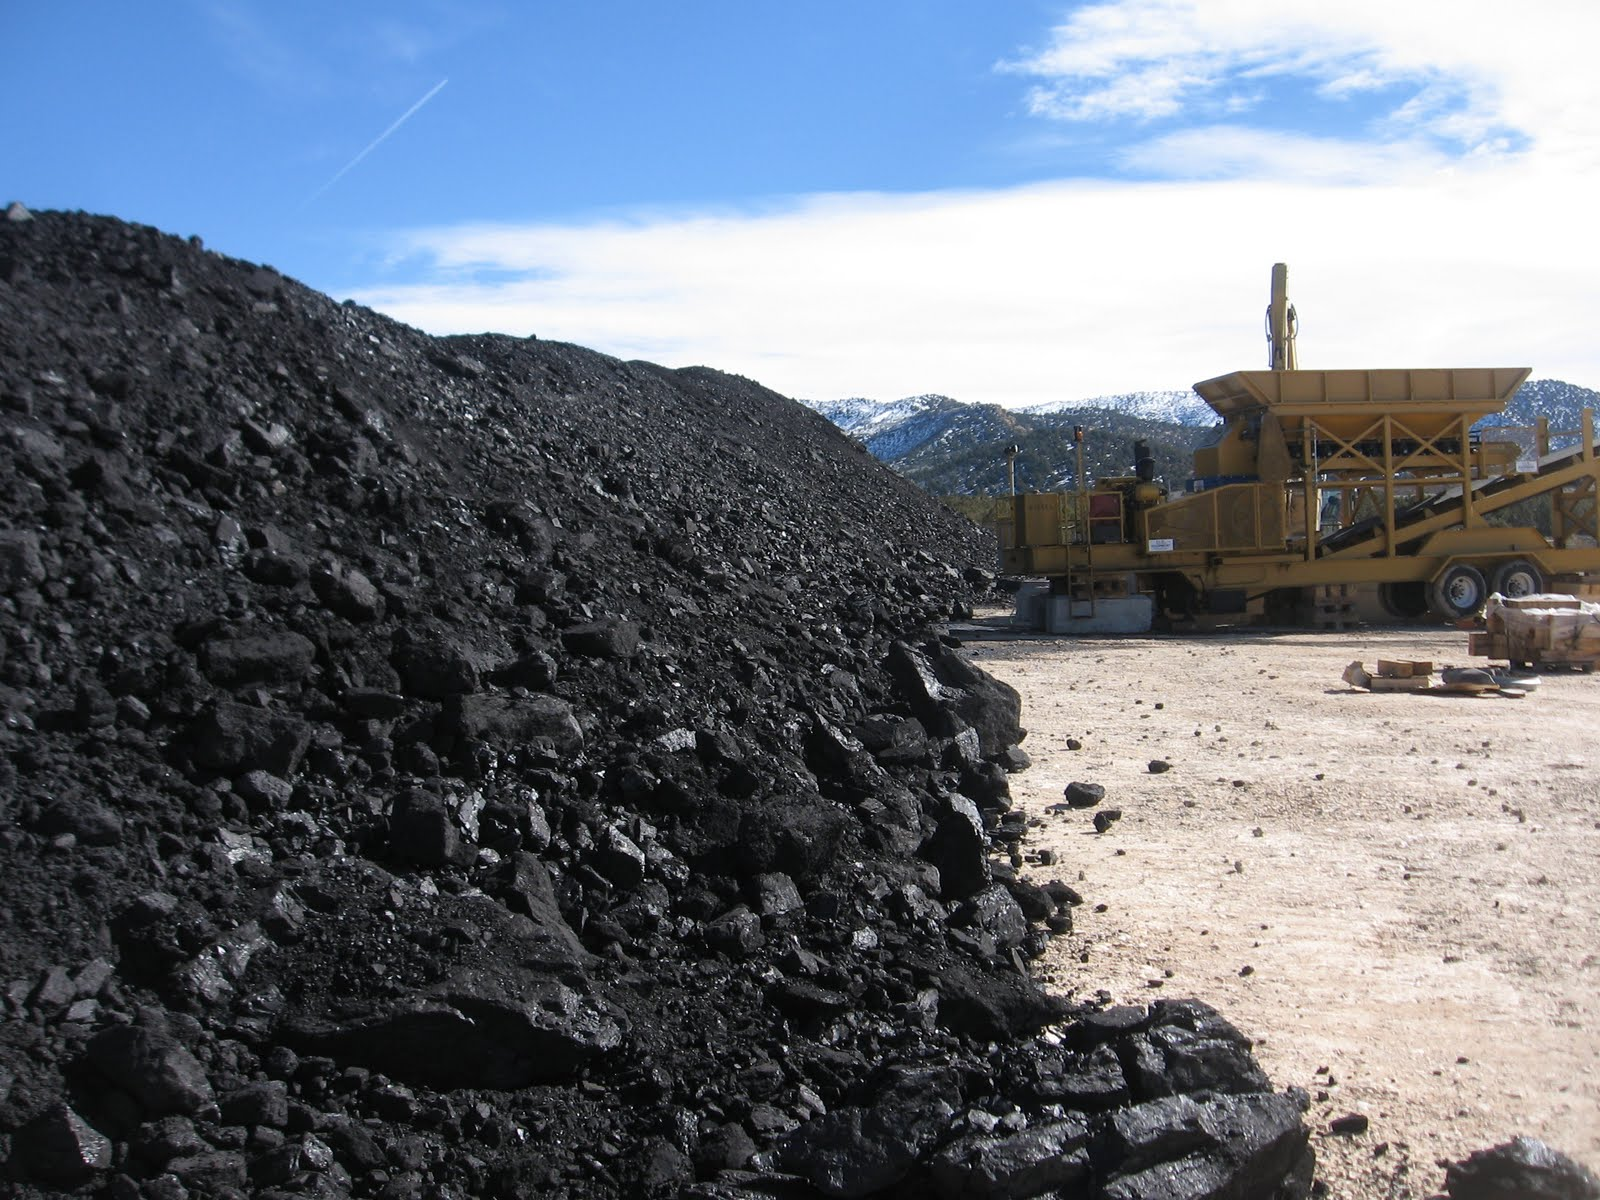 War on coal. Check it out: